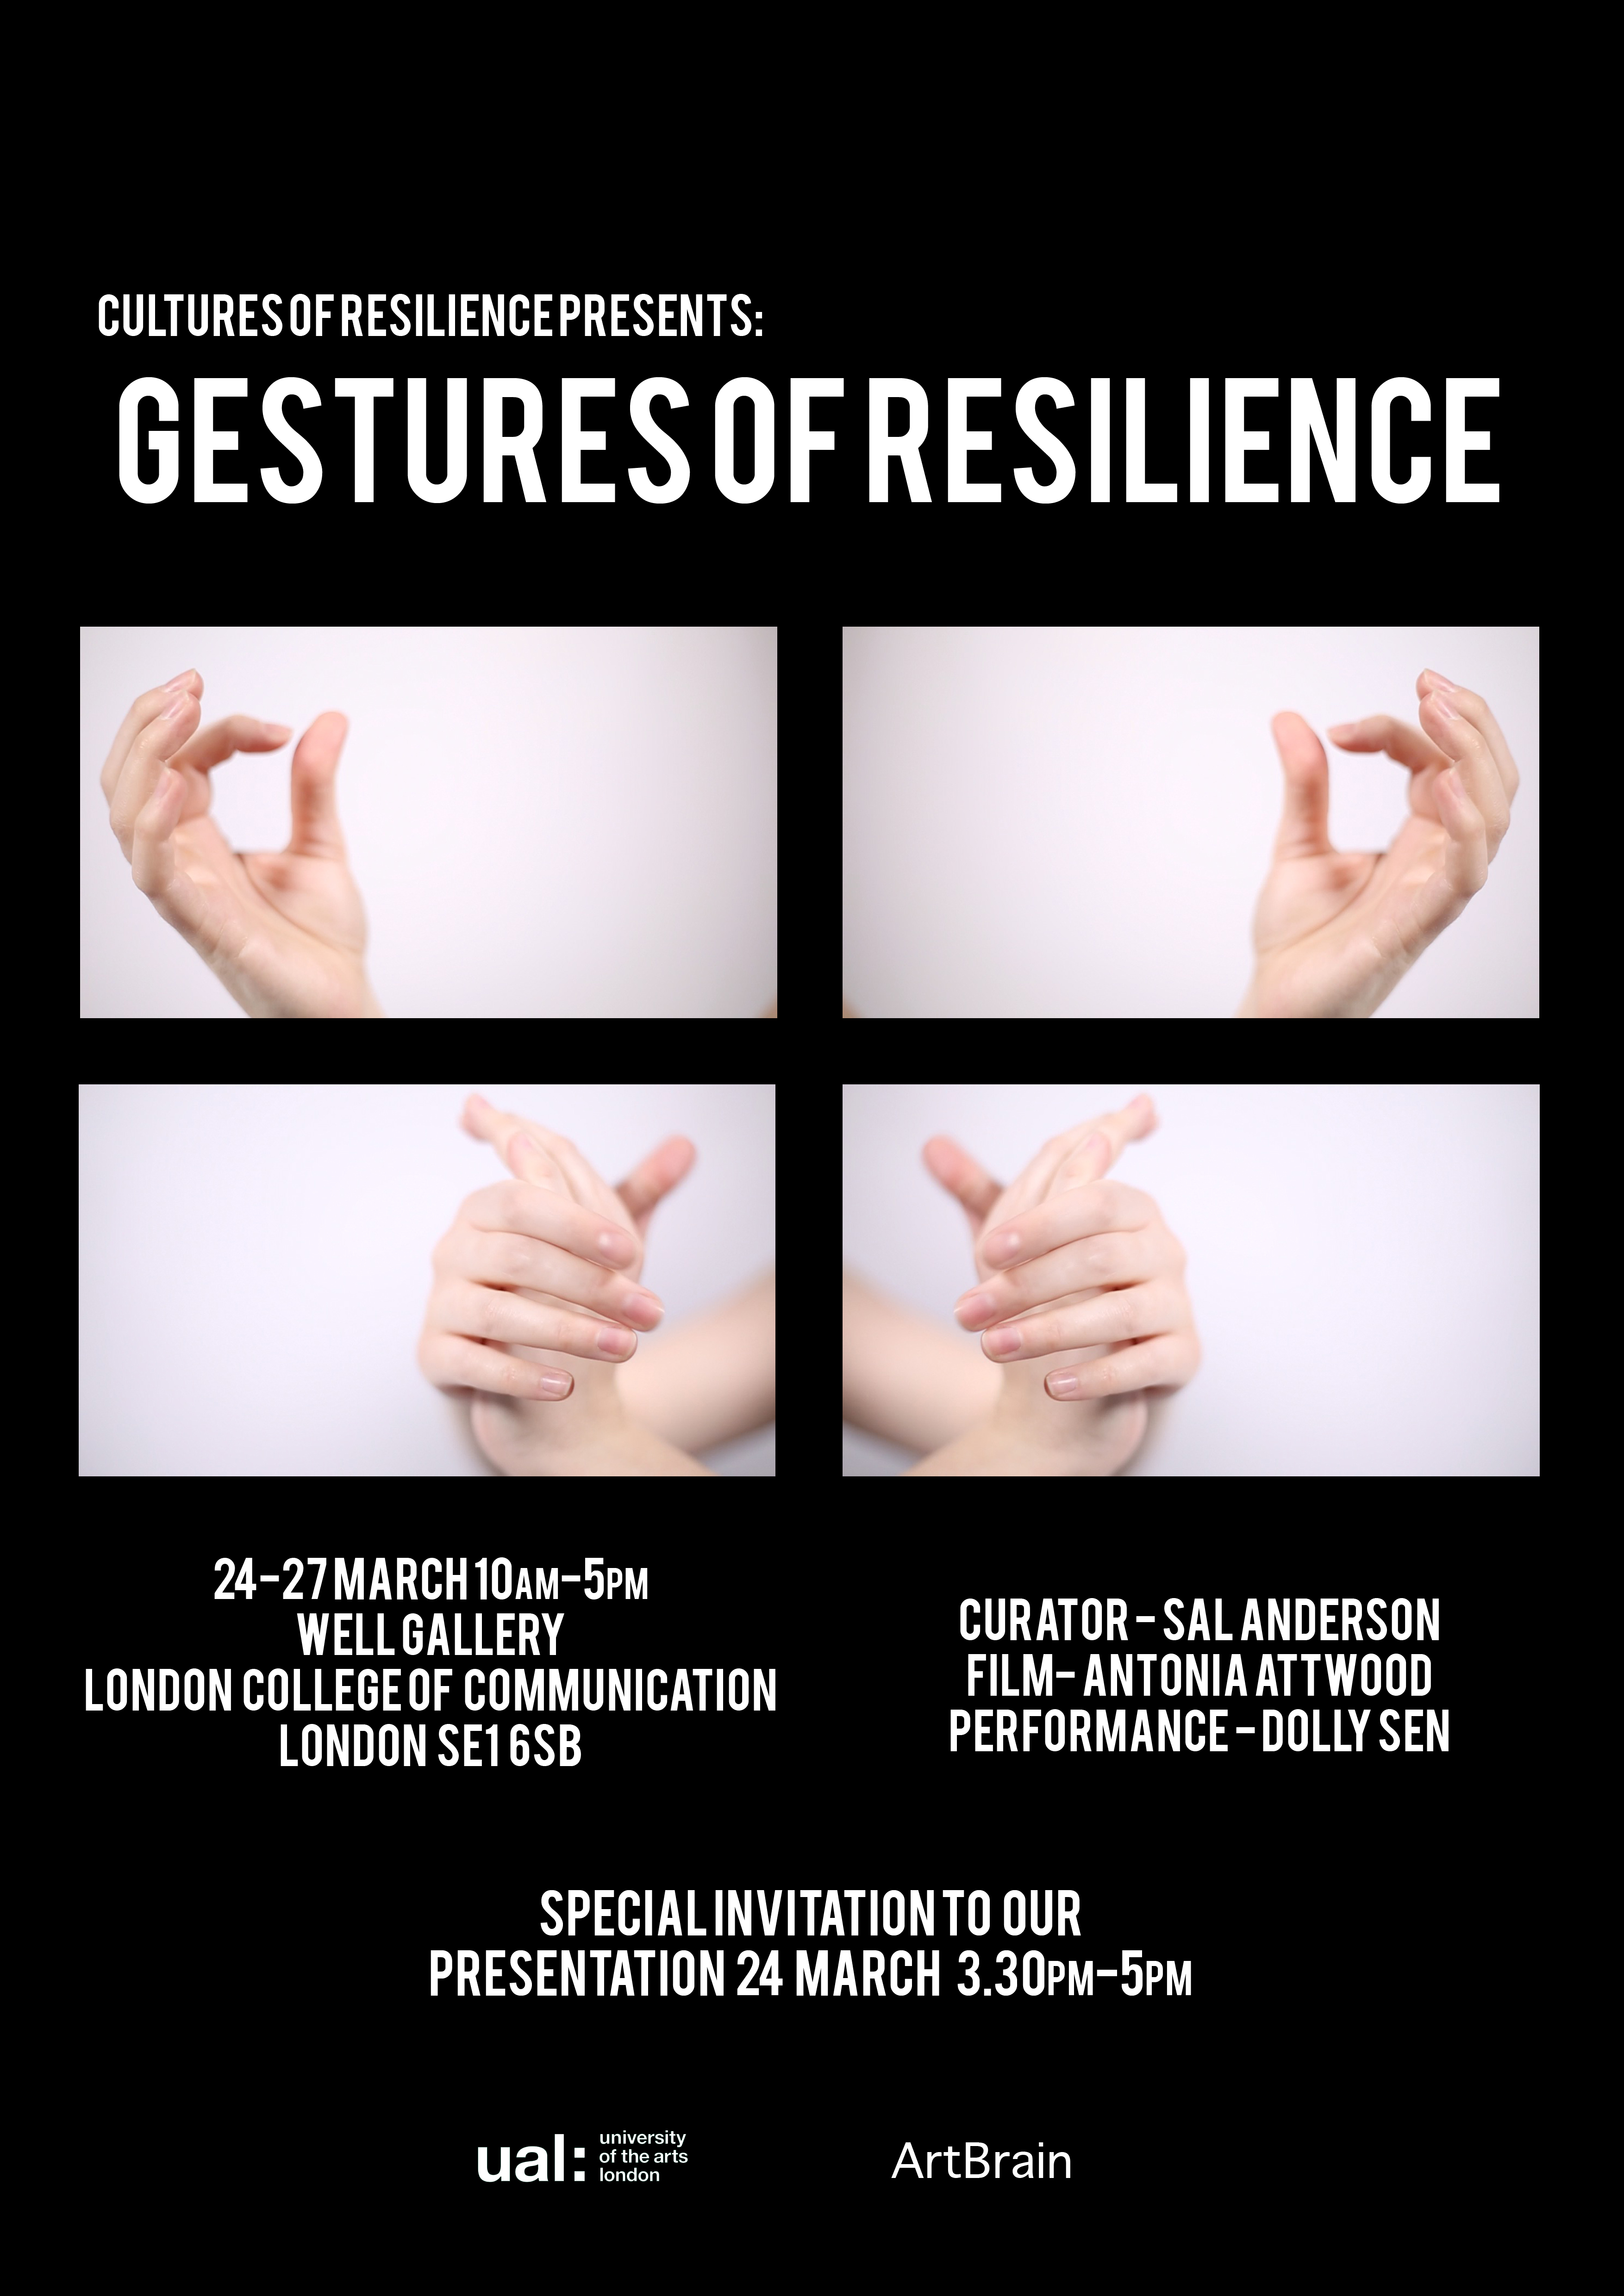 Gestures of Resilience Event